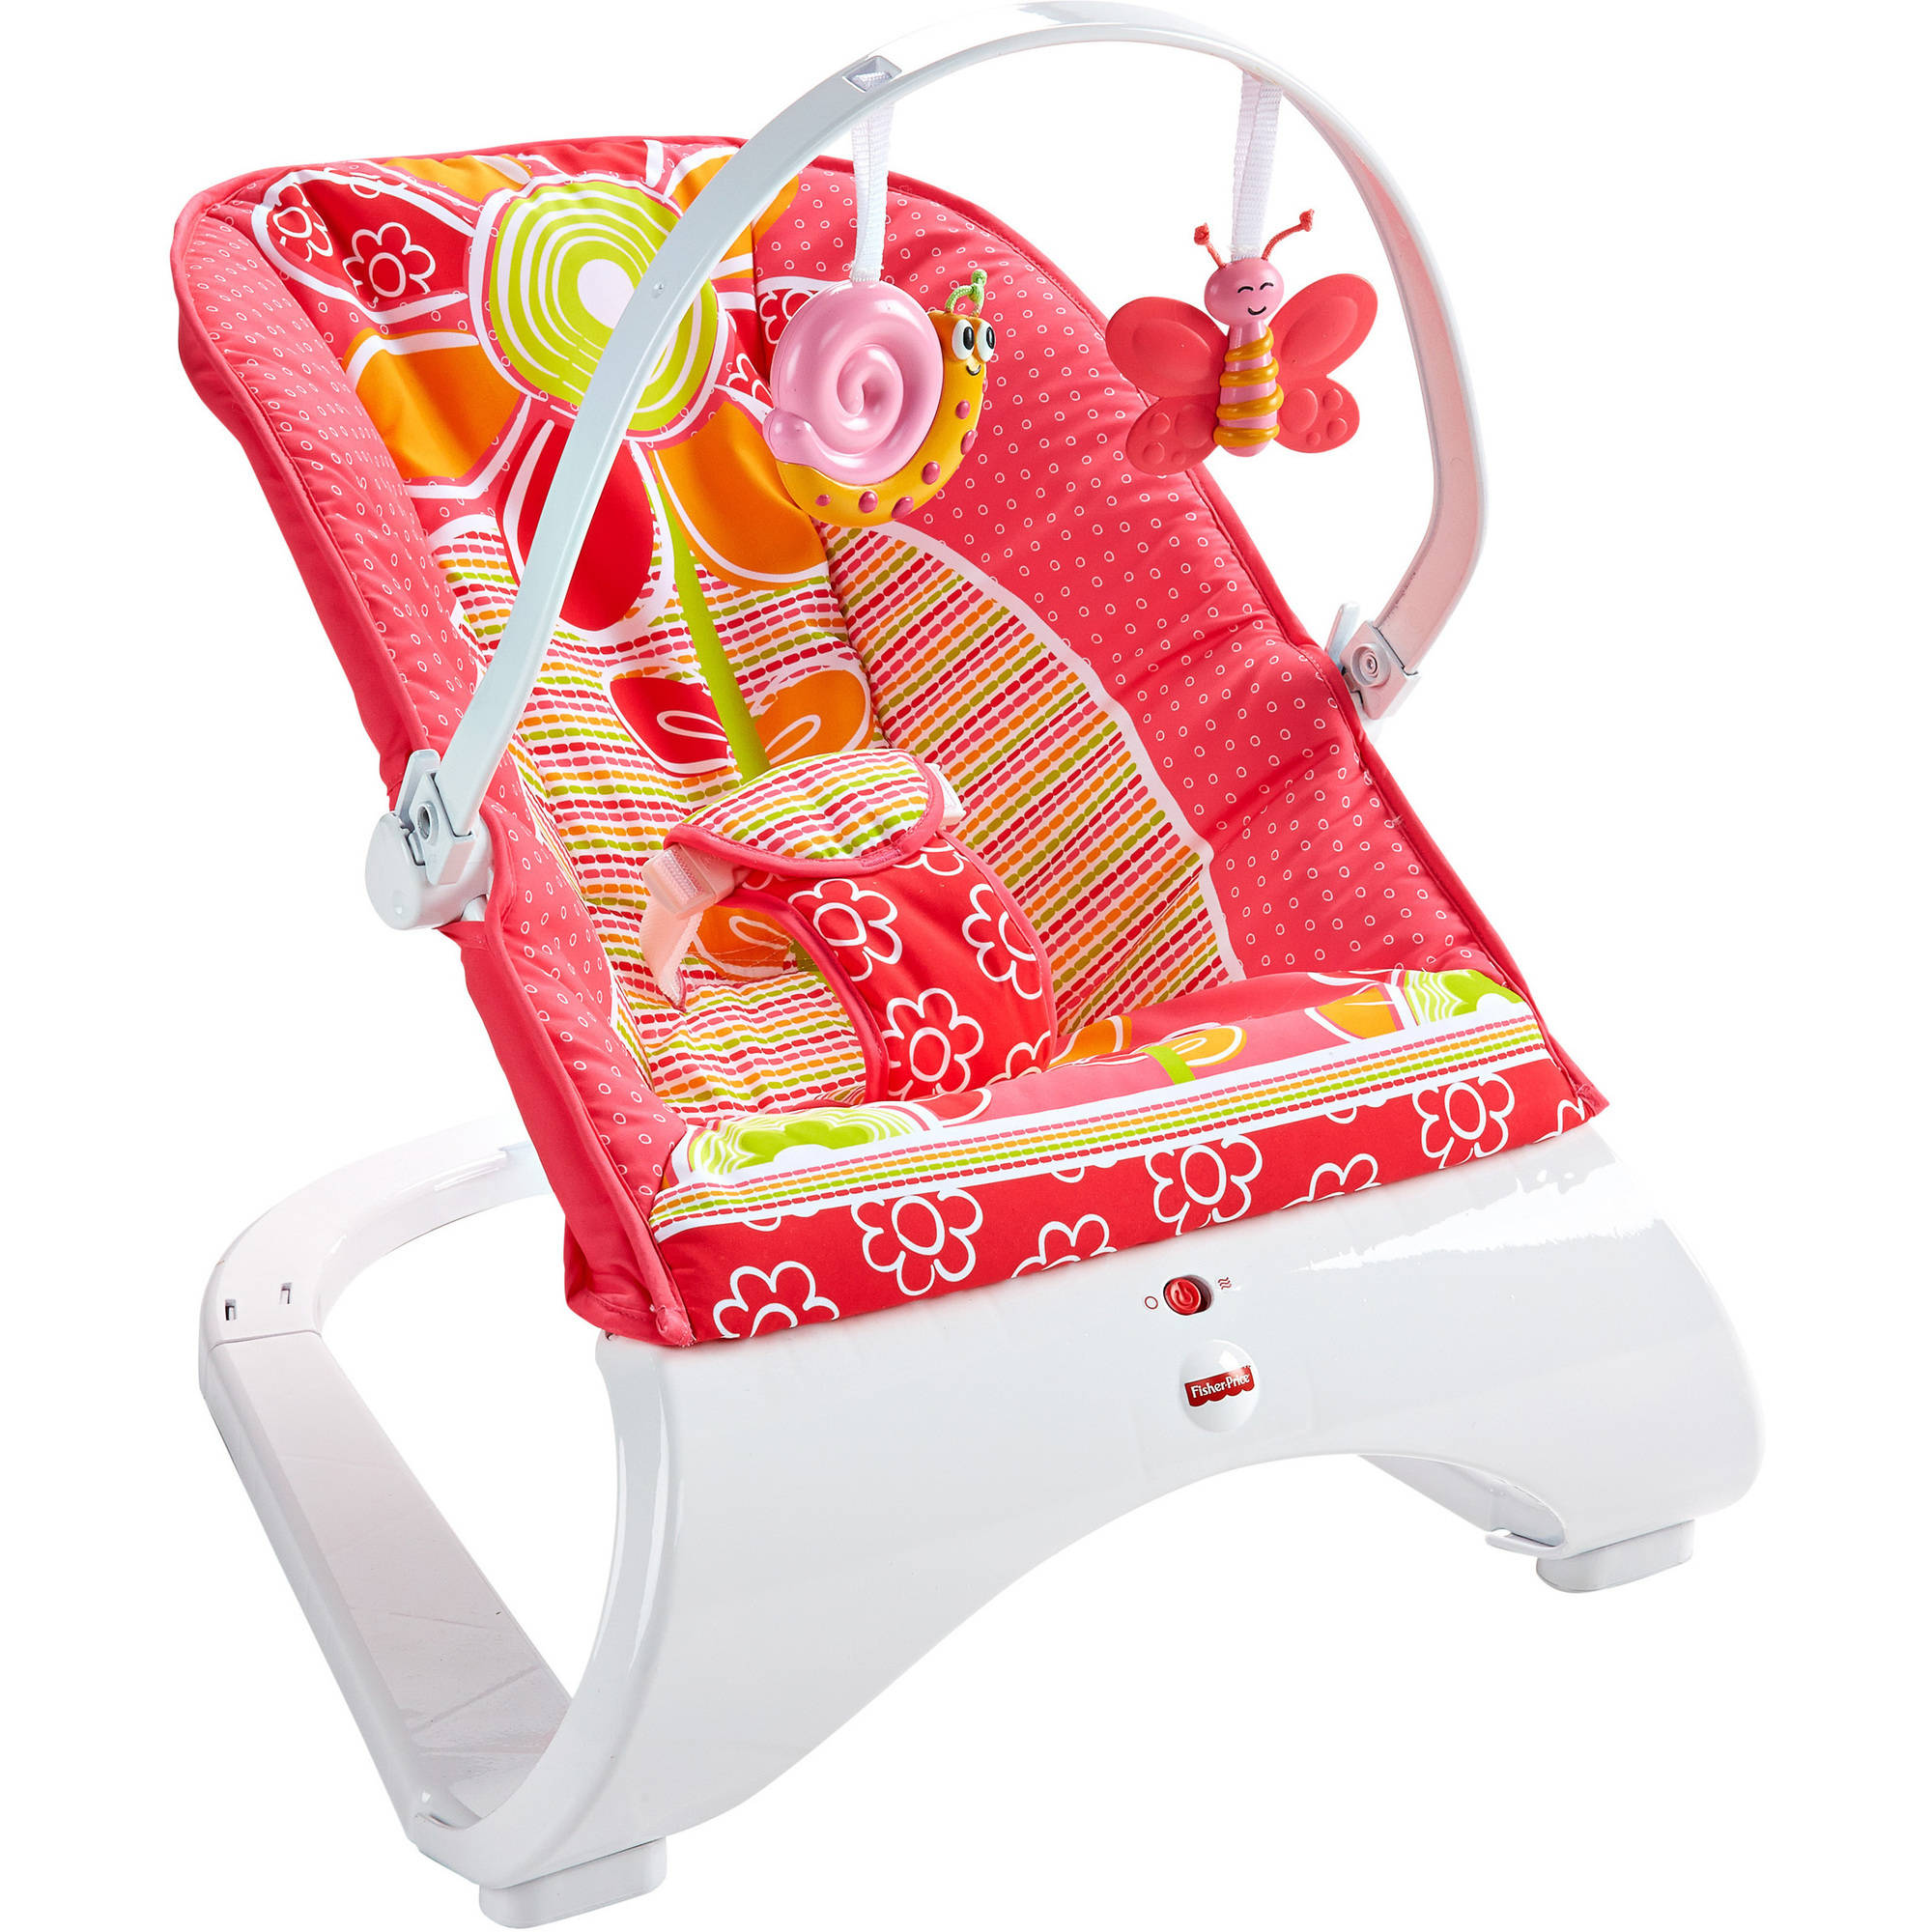 Fisher-Price Comfort Curve Bouncer - Floral Confetti